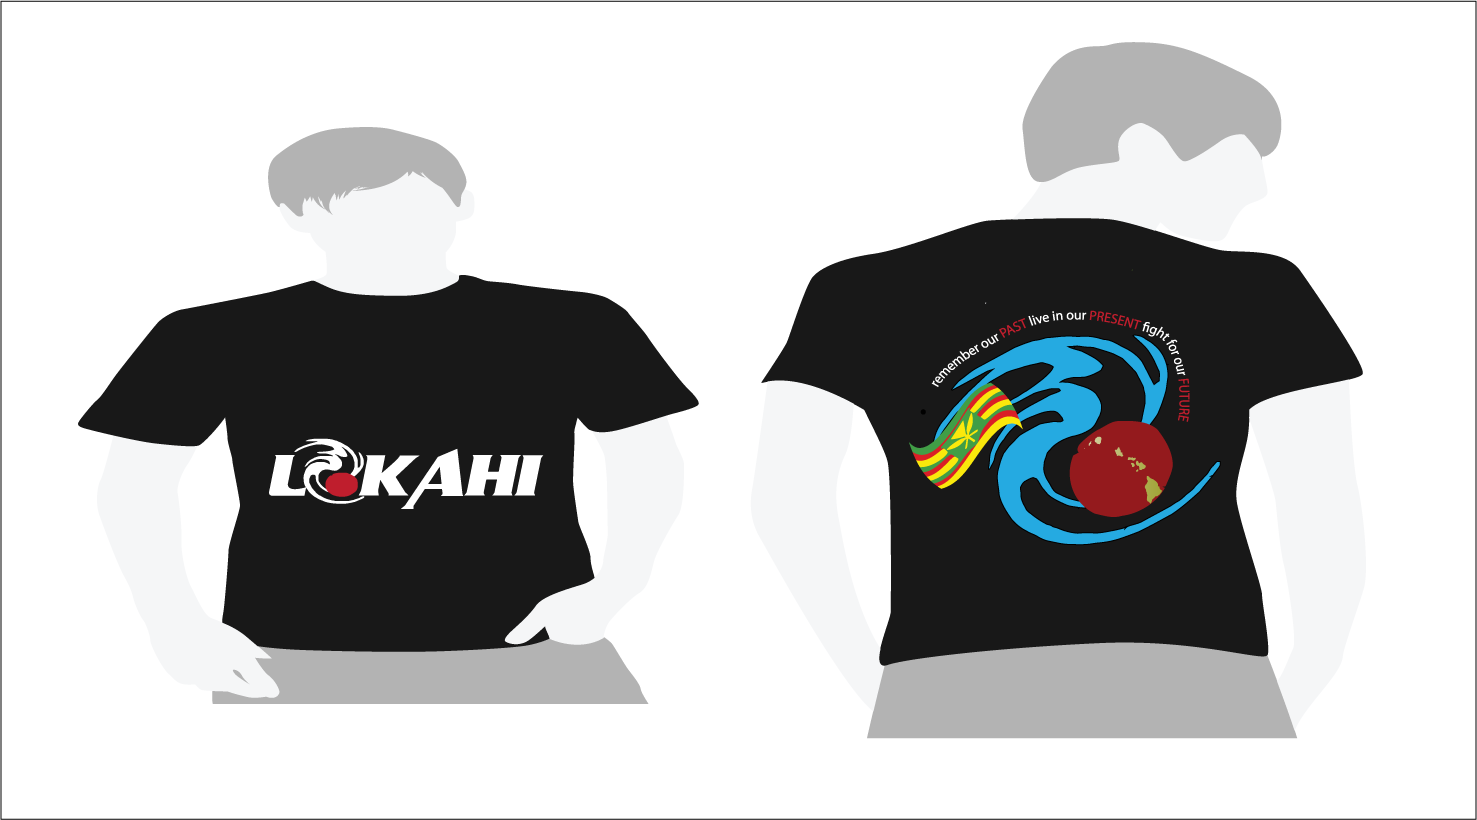 Clothing Design by Sri Lata - Entry No. 33 in the Clothing Design Contest Creative Clothing Design for LOKAHI designs.